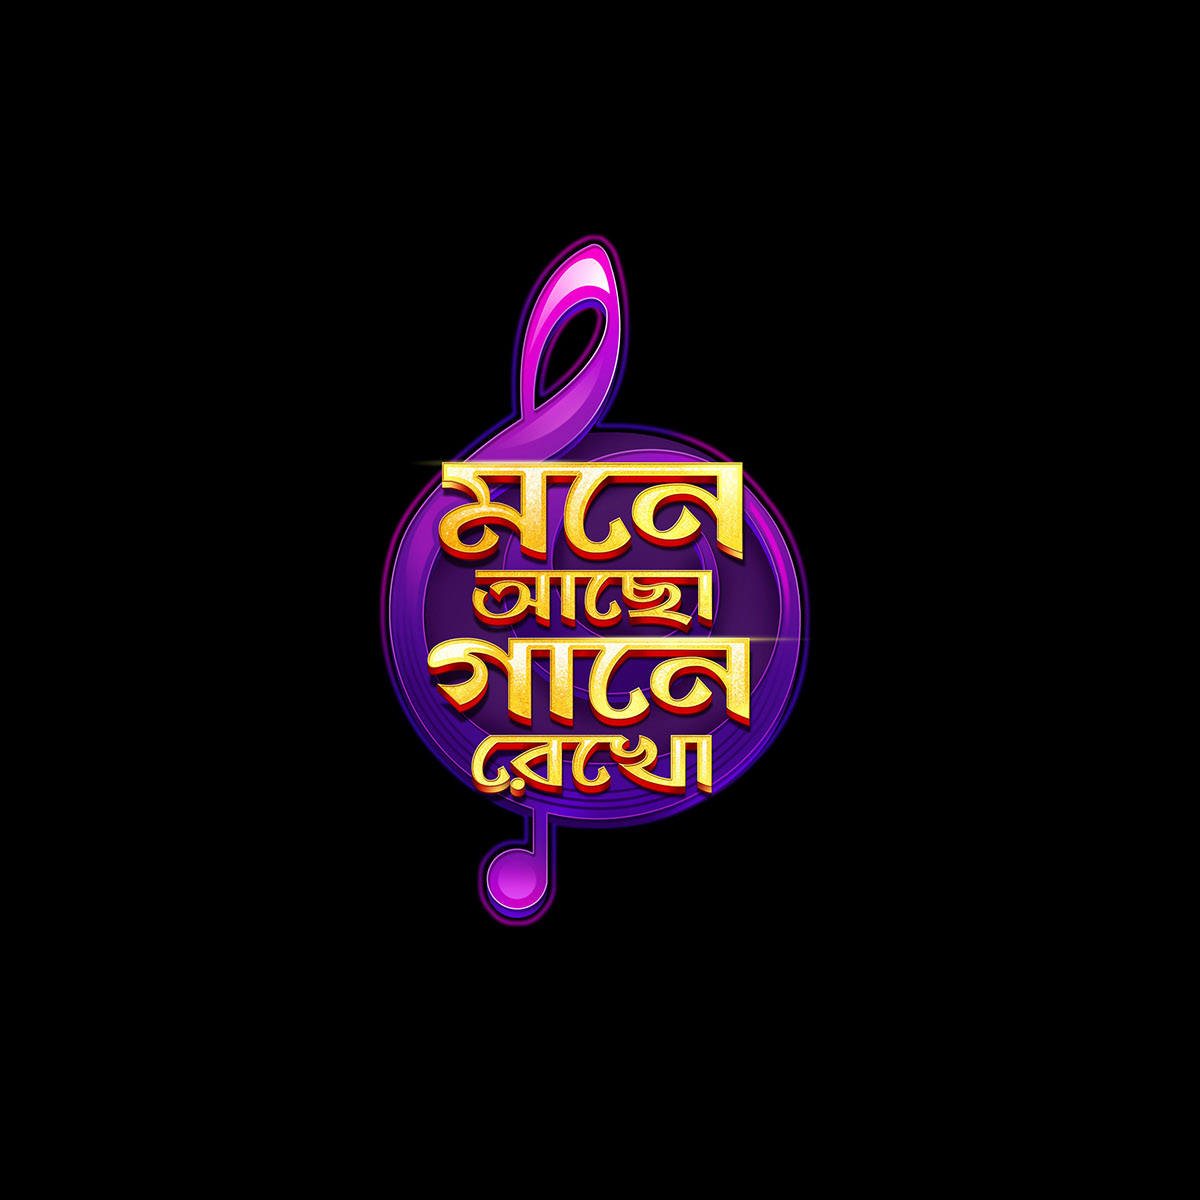 Zee bangla fiction and nonfiction logo on Behance